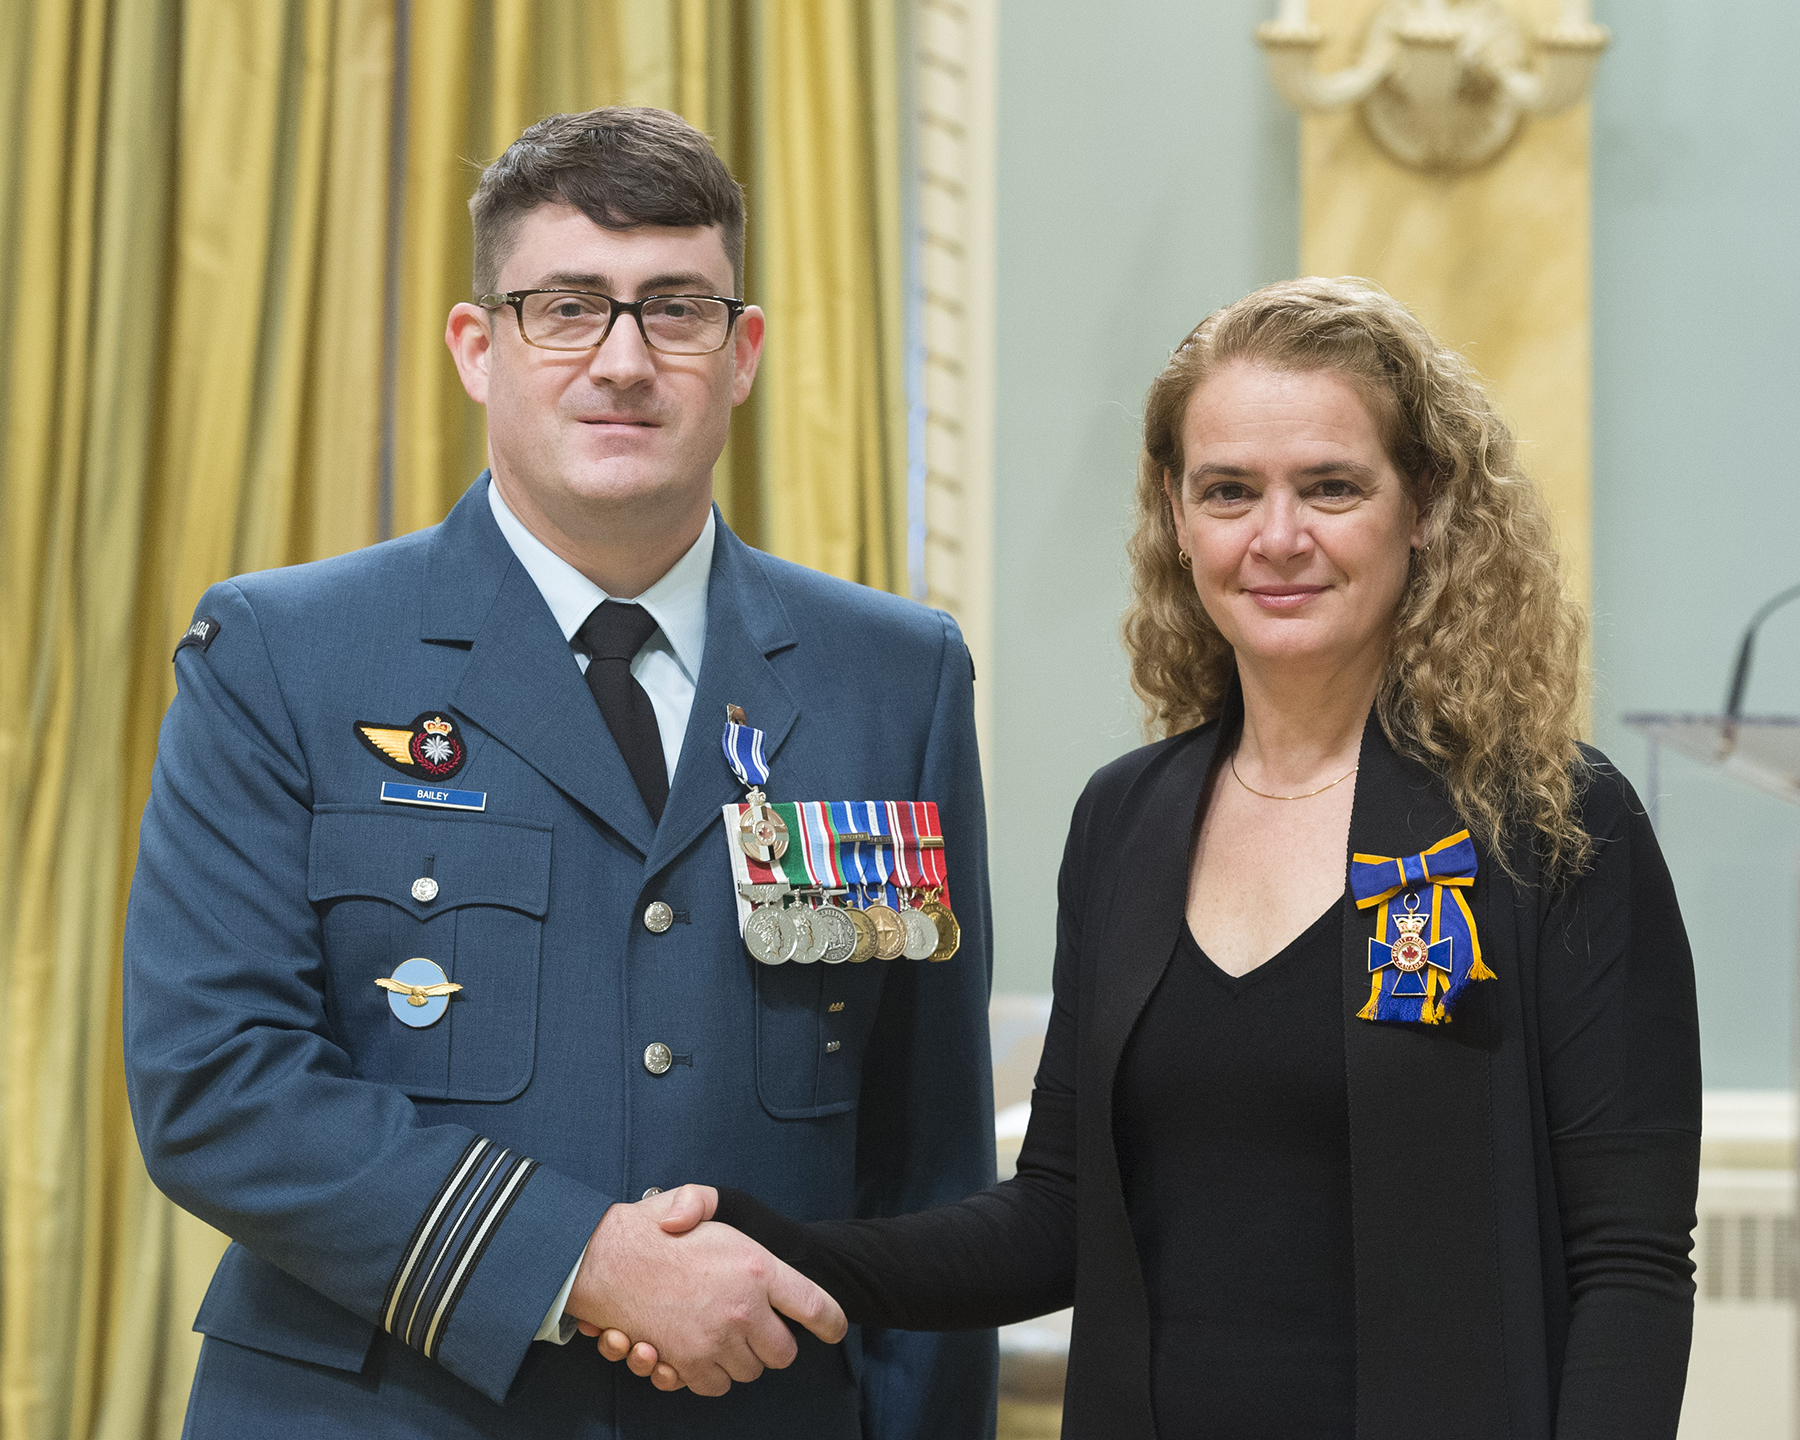 Captain Charles M. S. Bailey receives the Meritorious Service Medal (Military Division) from Governor General and Commander-in-Chief of Canada Julie Payette on February 28, 2018. PHOTO: Sergeant Johanie Maheu, OSGG, GG05-2018-0066-019